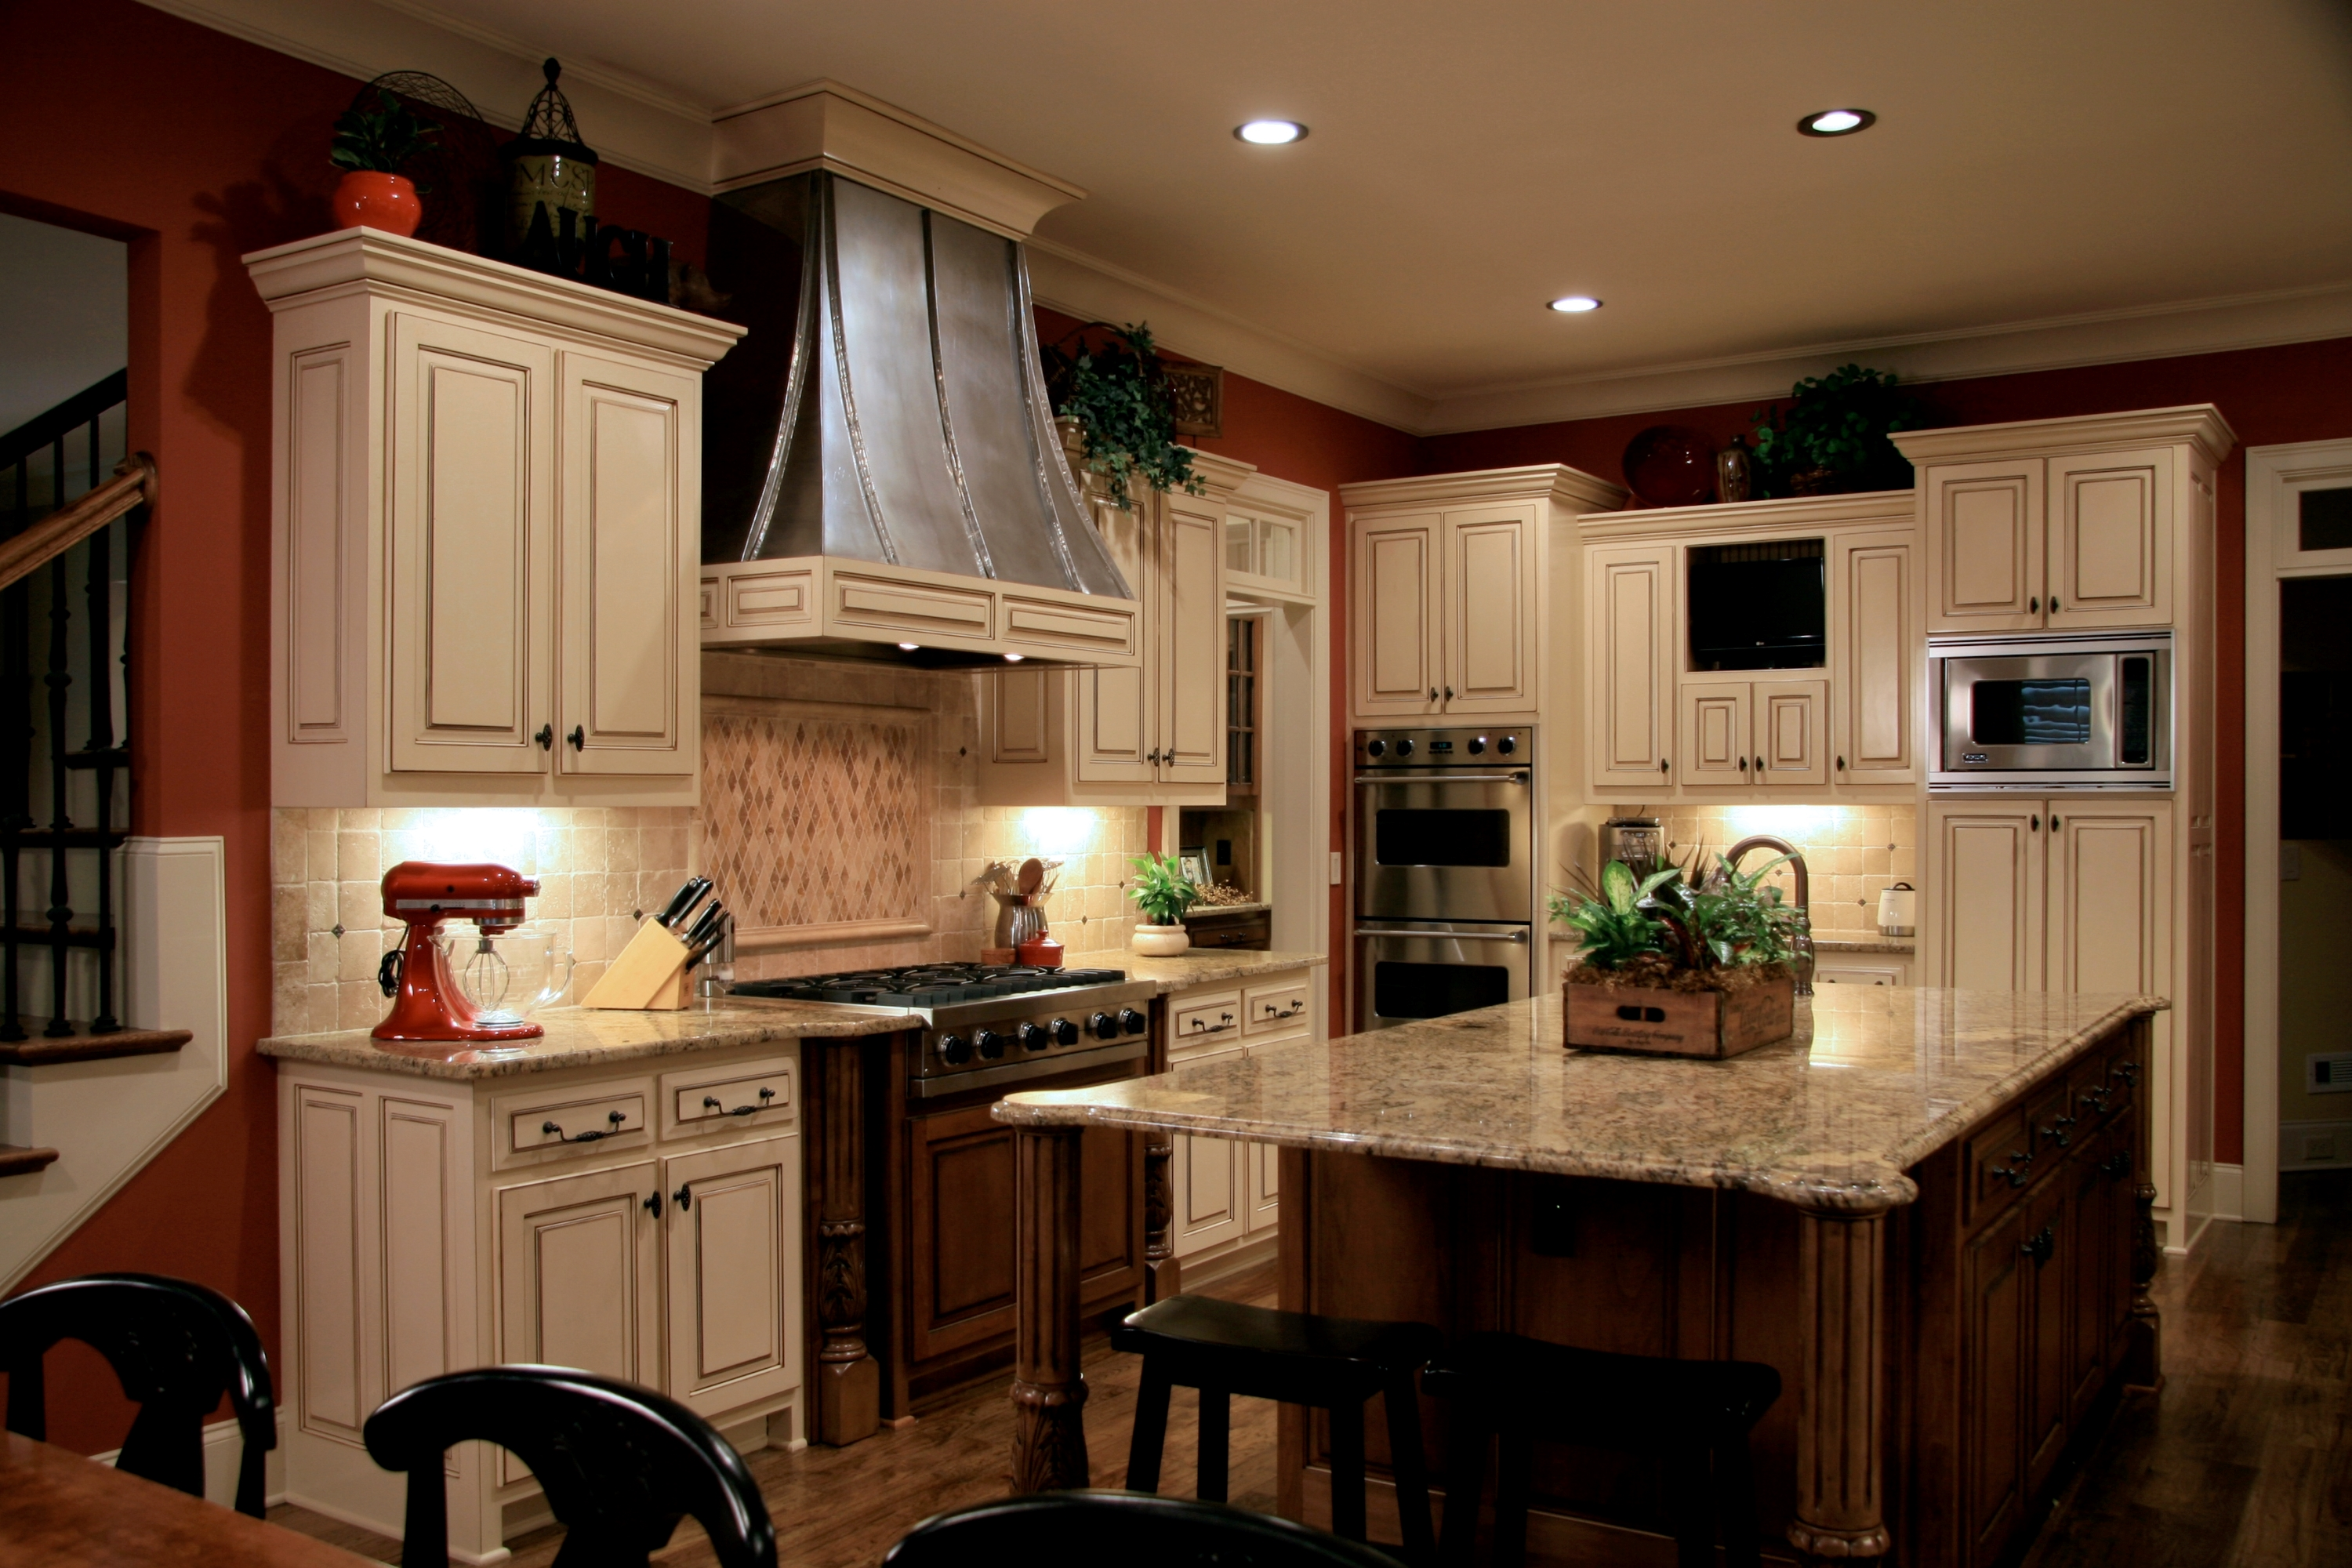 Install recessed lighting in a kitchen | Pro Construction Guide